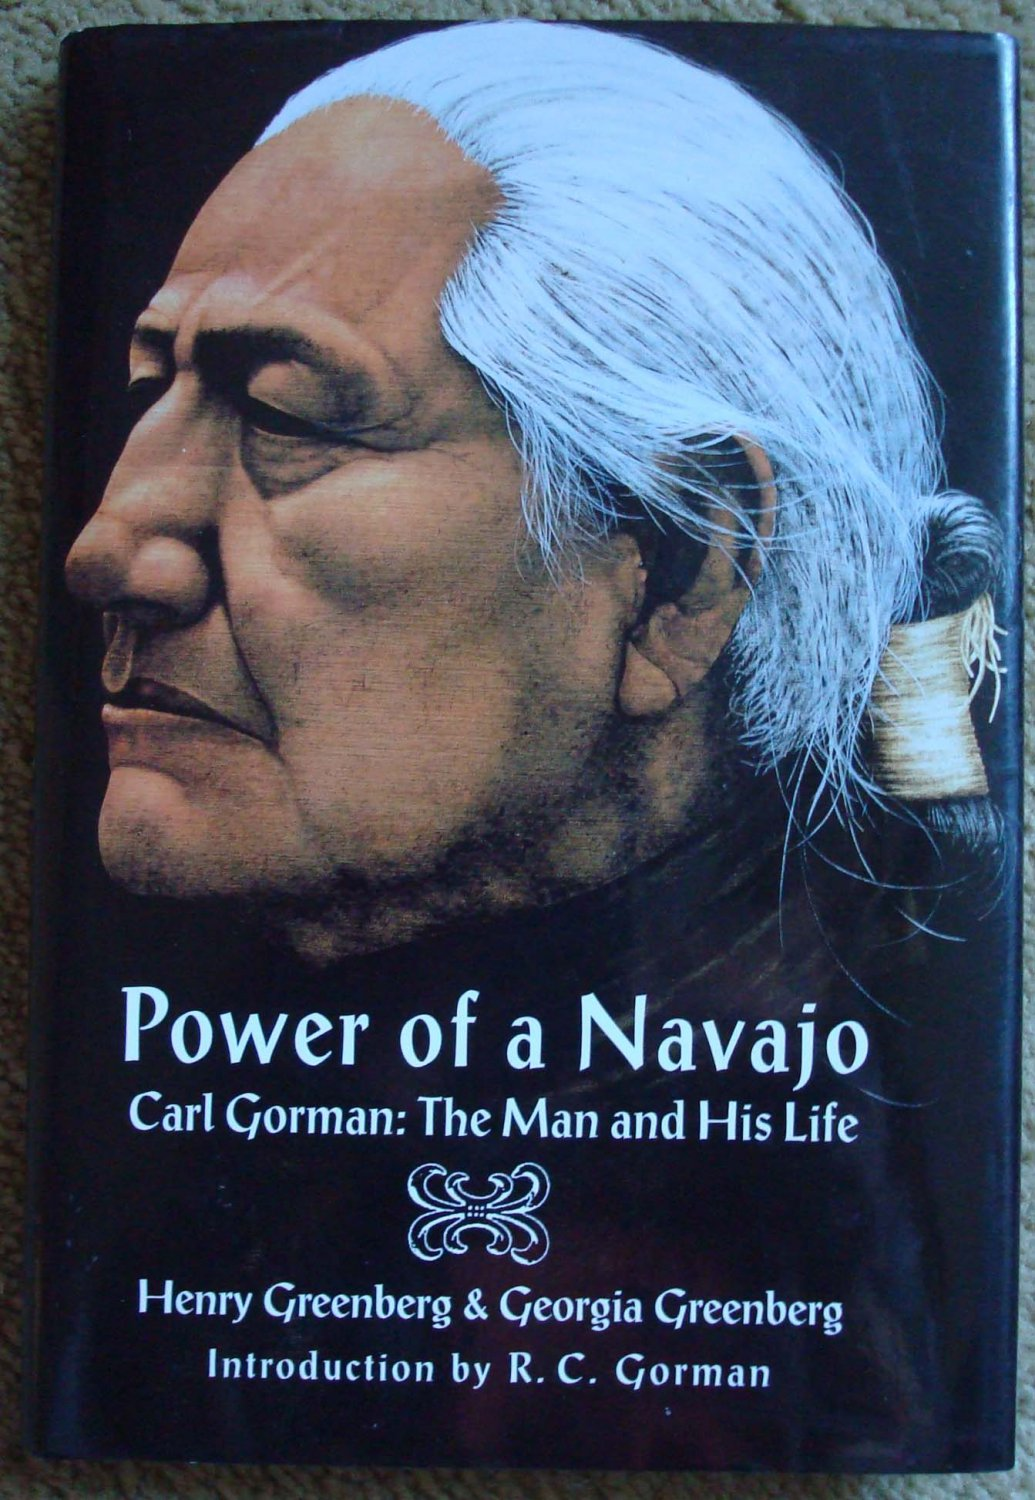 Power of a Navajo, Carl Gorman: The Man and His Life